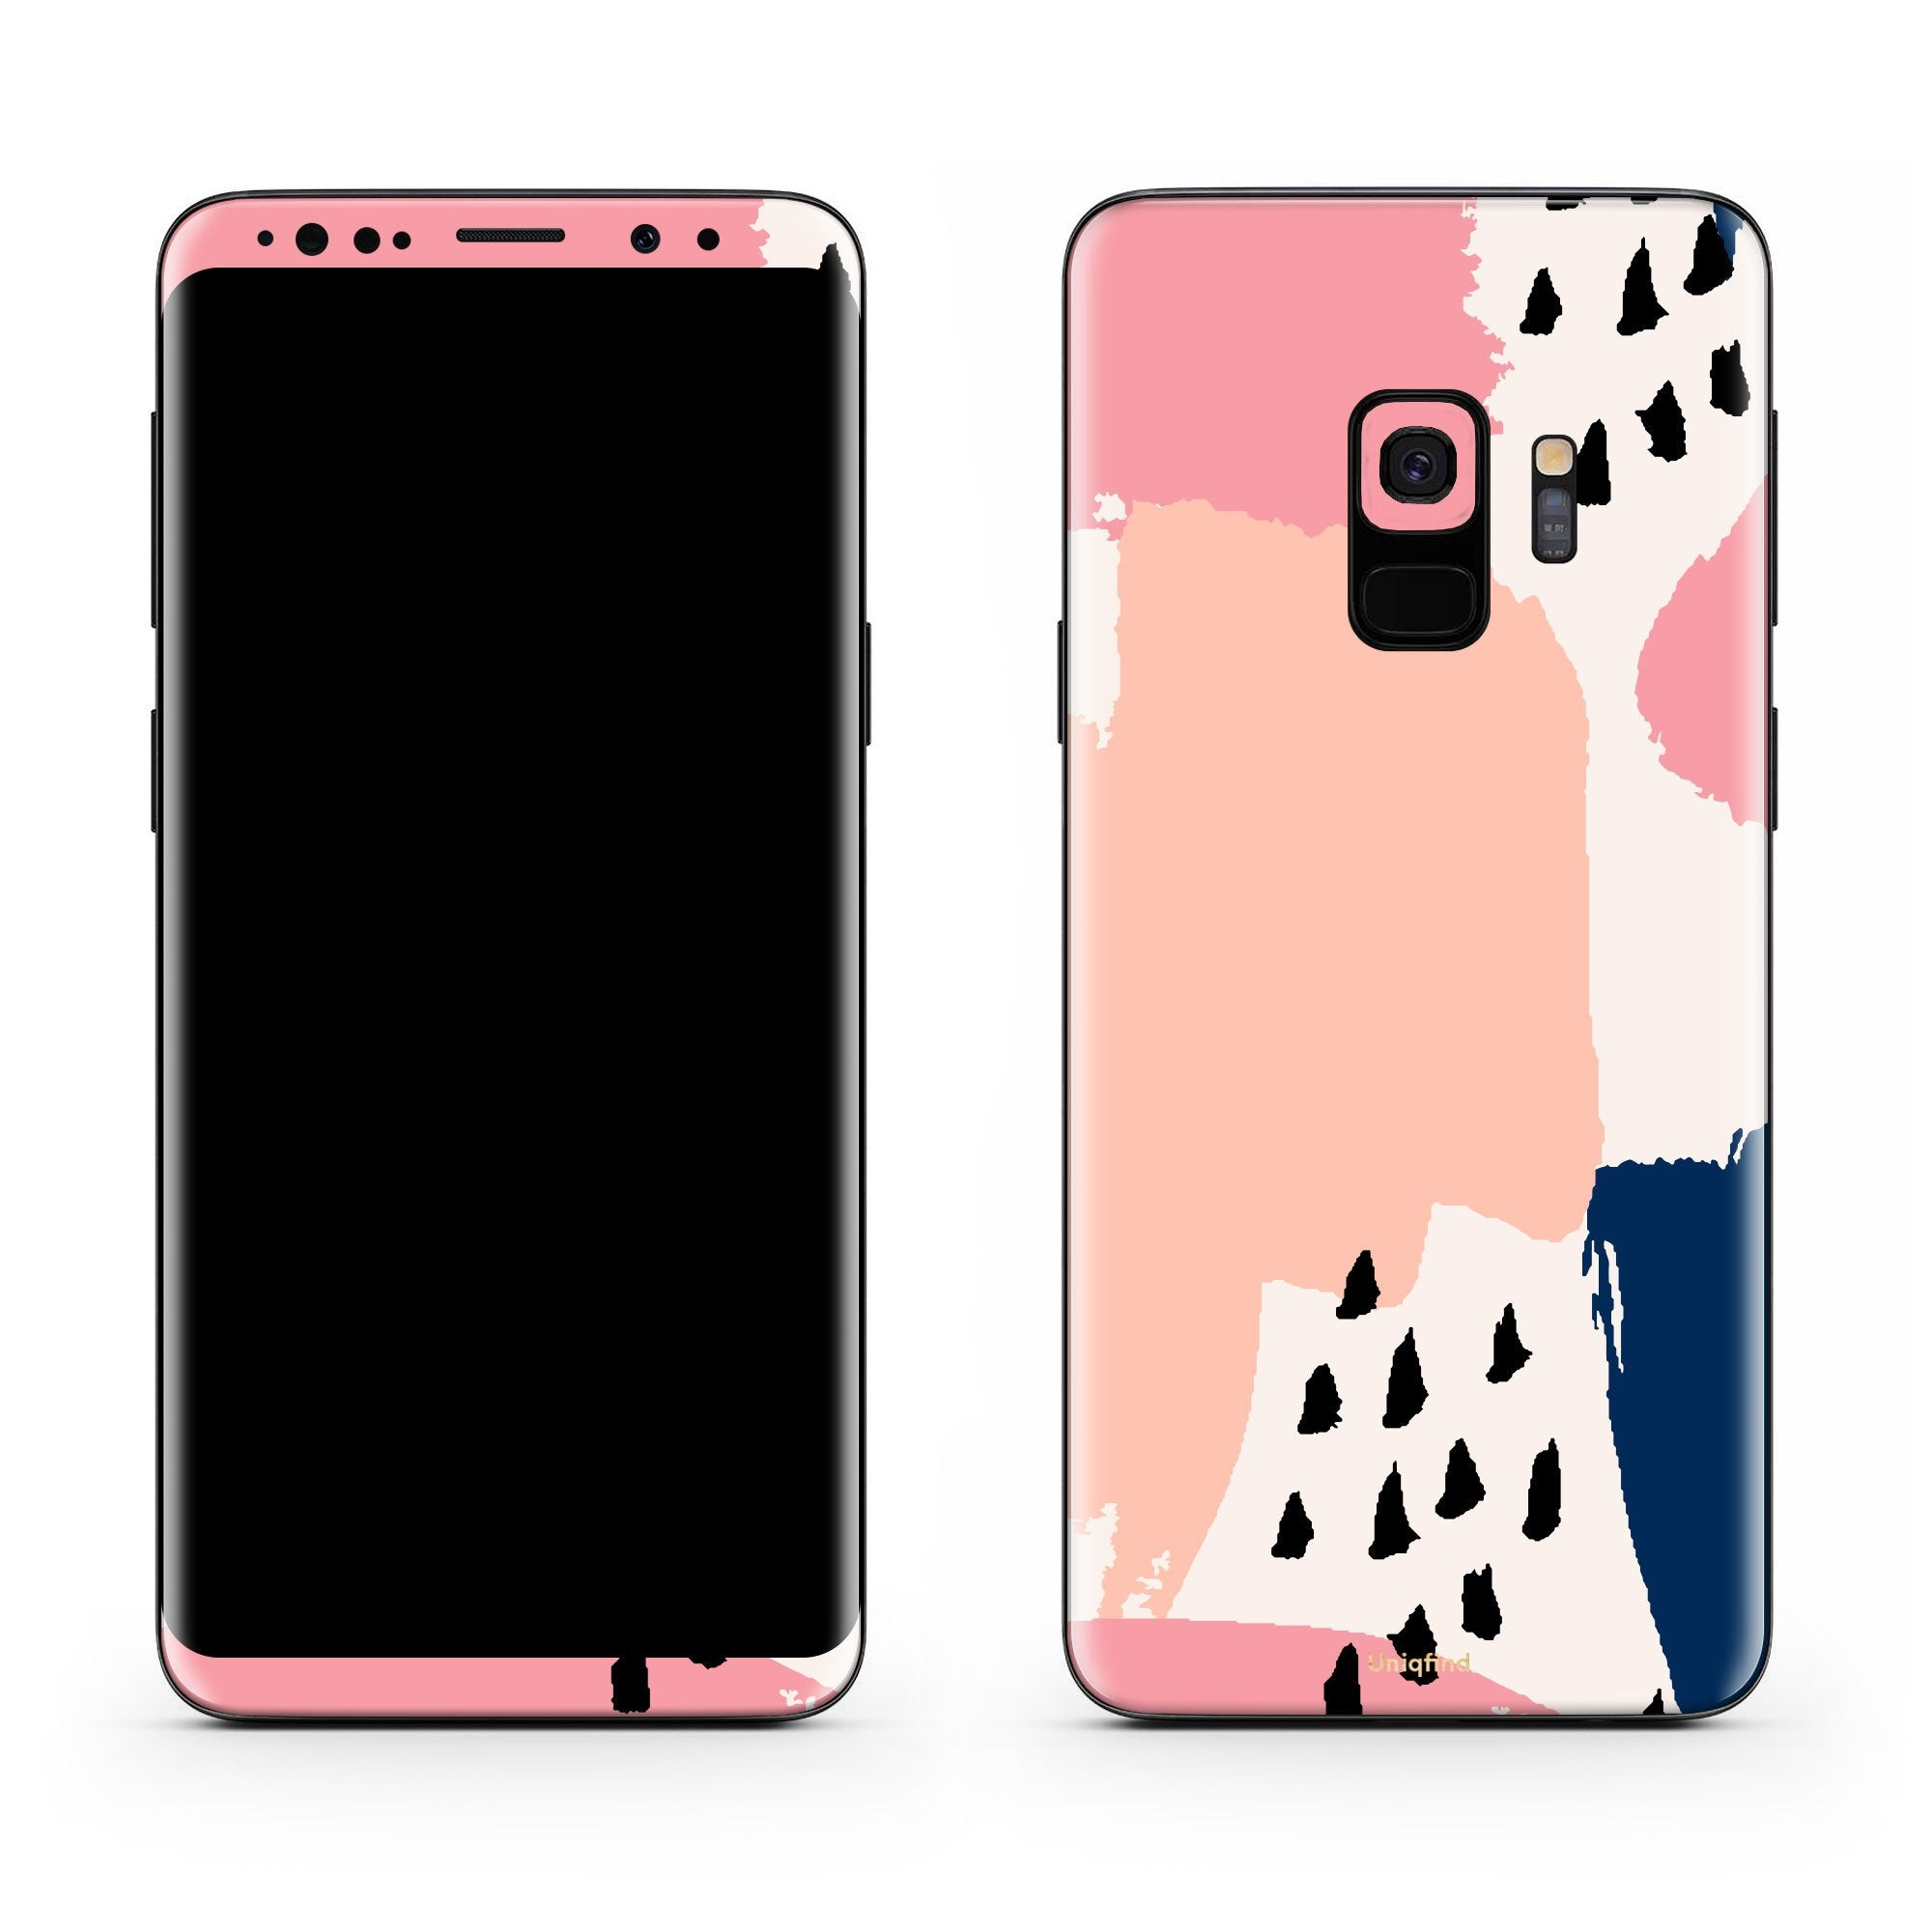 Miami Vice Galaxy S9 Plus Skin + Case